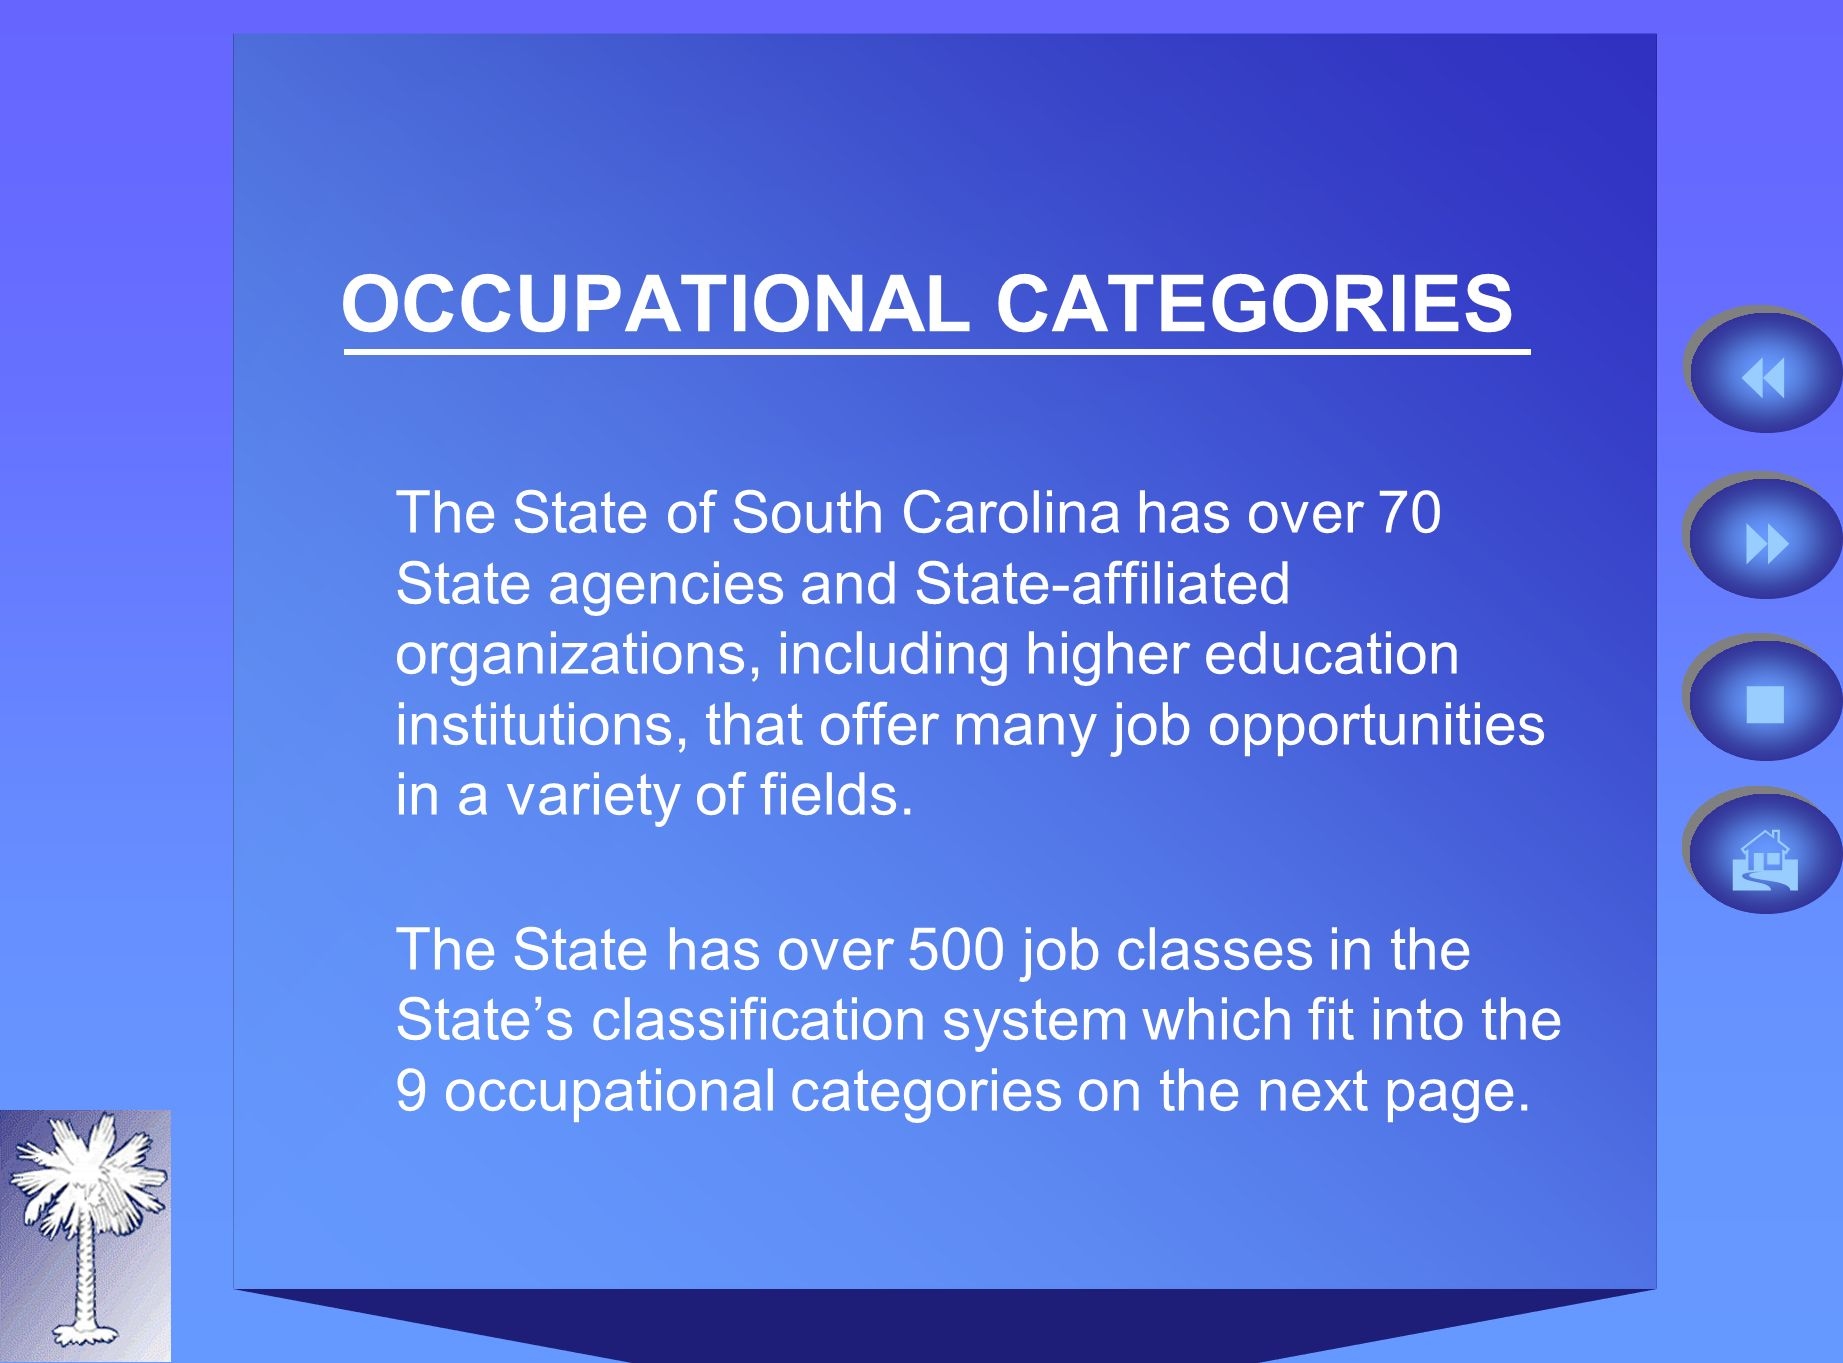 OCCUPATIONAL CATEGORIES The State of South Carolina has over 70 State agencies and State-affiliated organizations, including higher education institutions, that offer many job opportunities in a variety of fields.